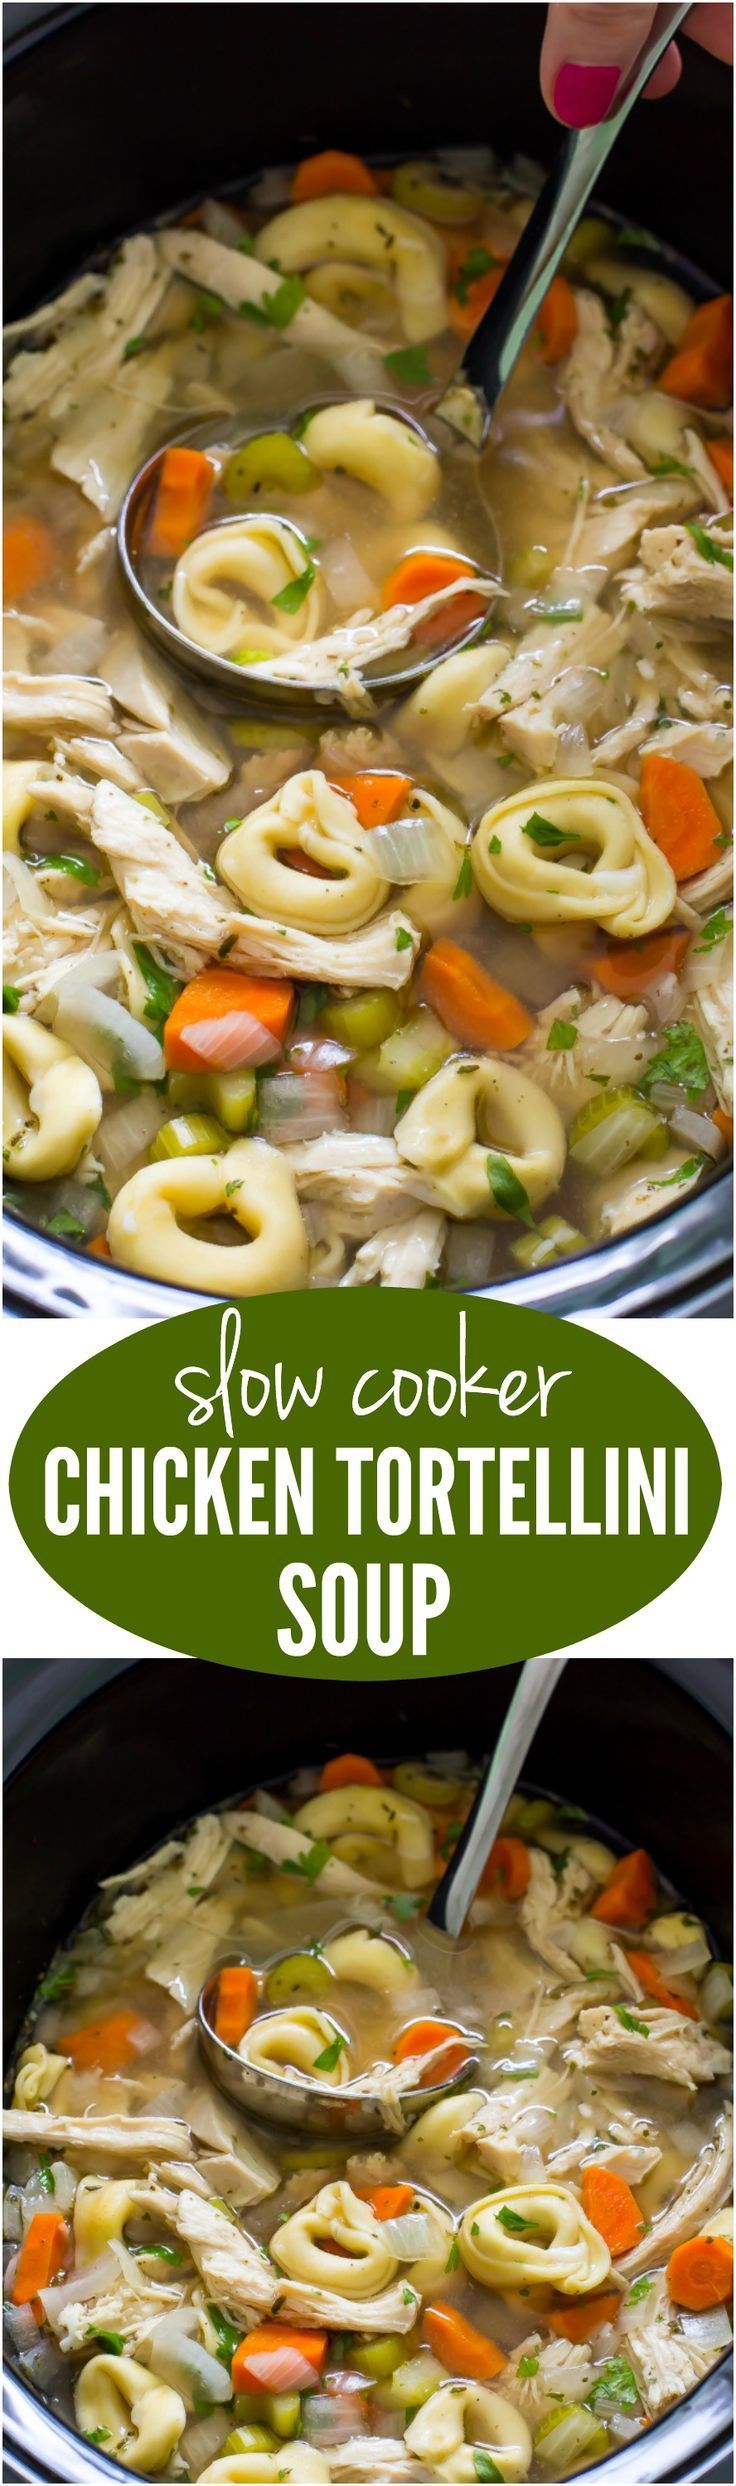 Slow Cooker Chicken Tortellini Soup   Love the simplicity of this, and how deliciously comforting it looks!  Is the tortellini frozen or fre...